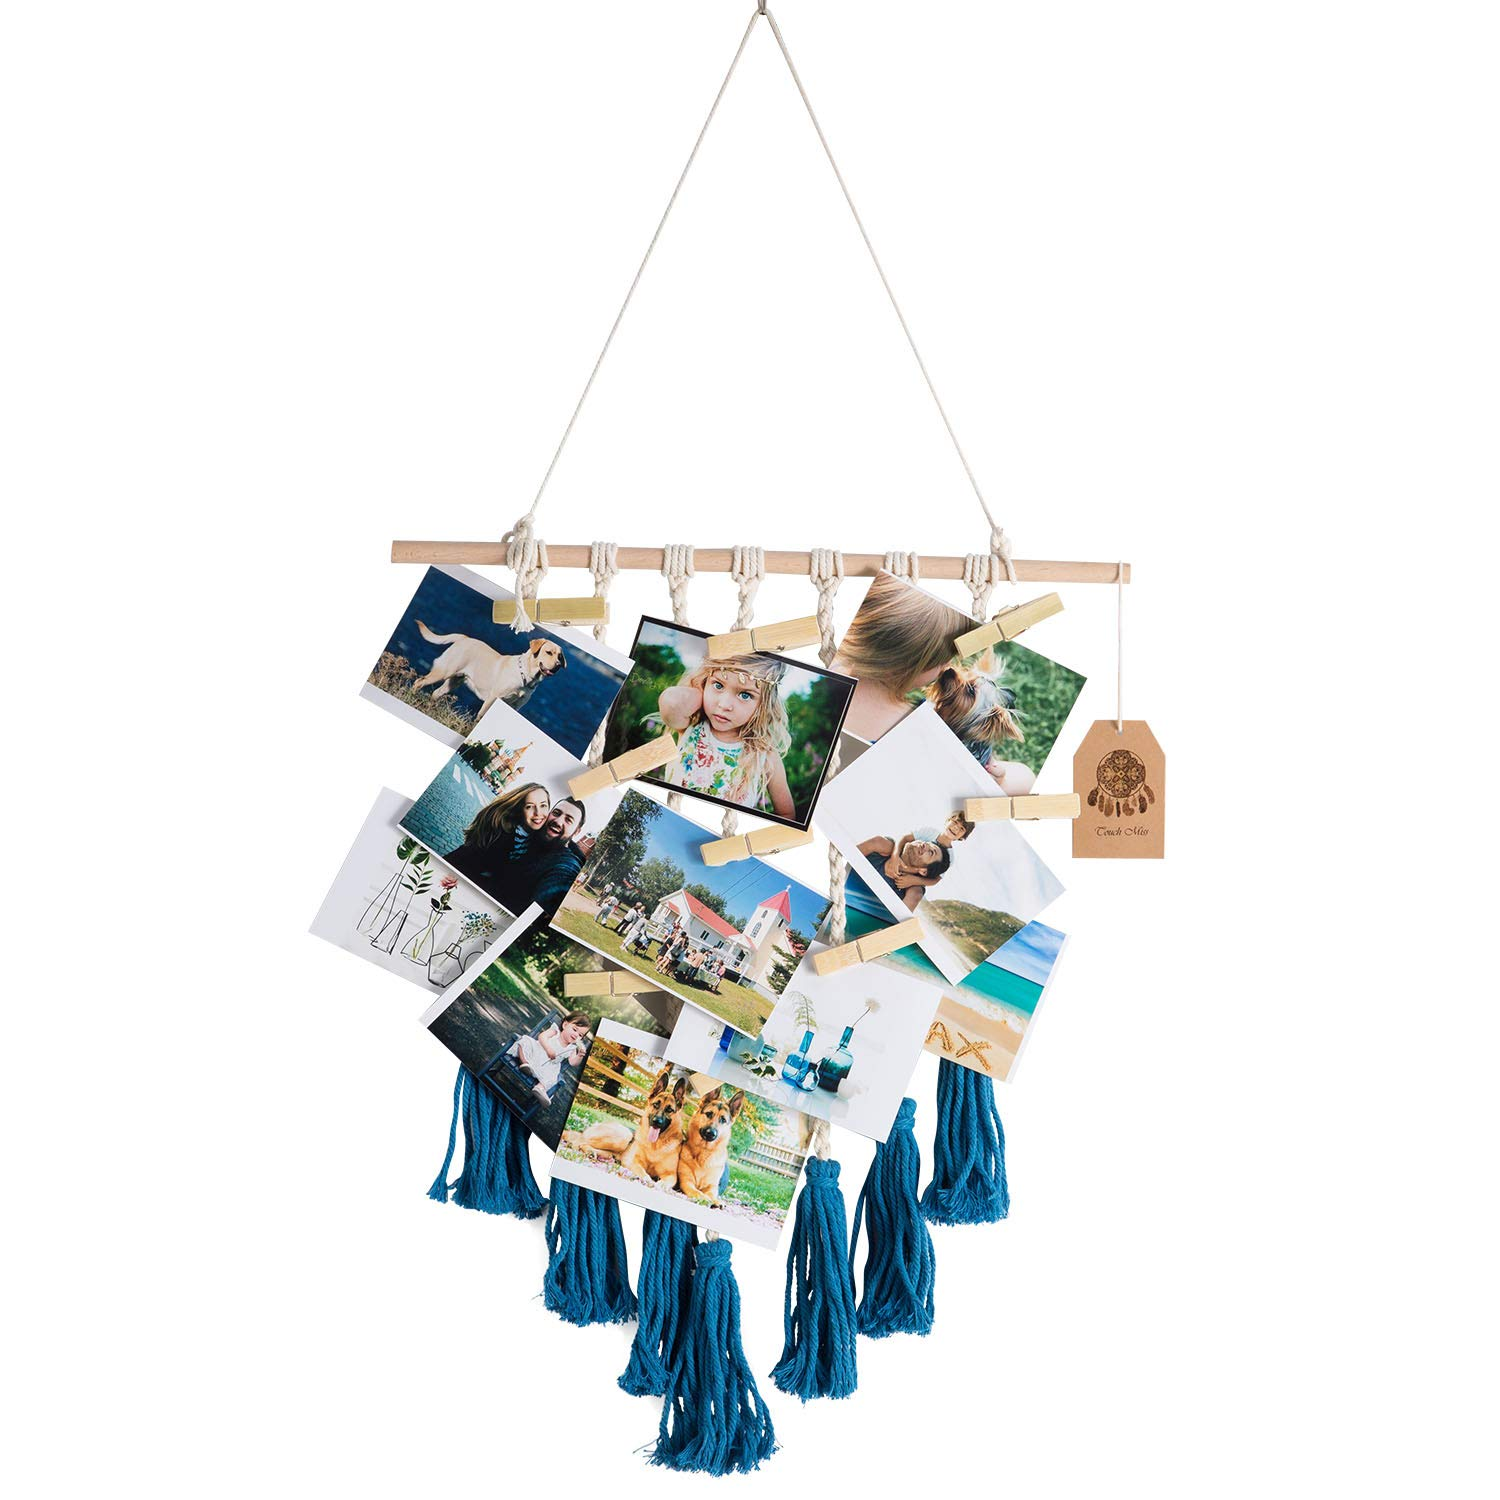 TOUCH MISS Macrame Photo Display Blue Pictures Organizer Macrame Wall Hanging Boho Home Decor, with 20 Wood Clips by TOUCH MISS